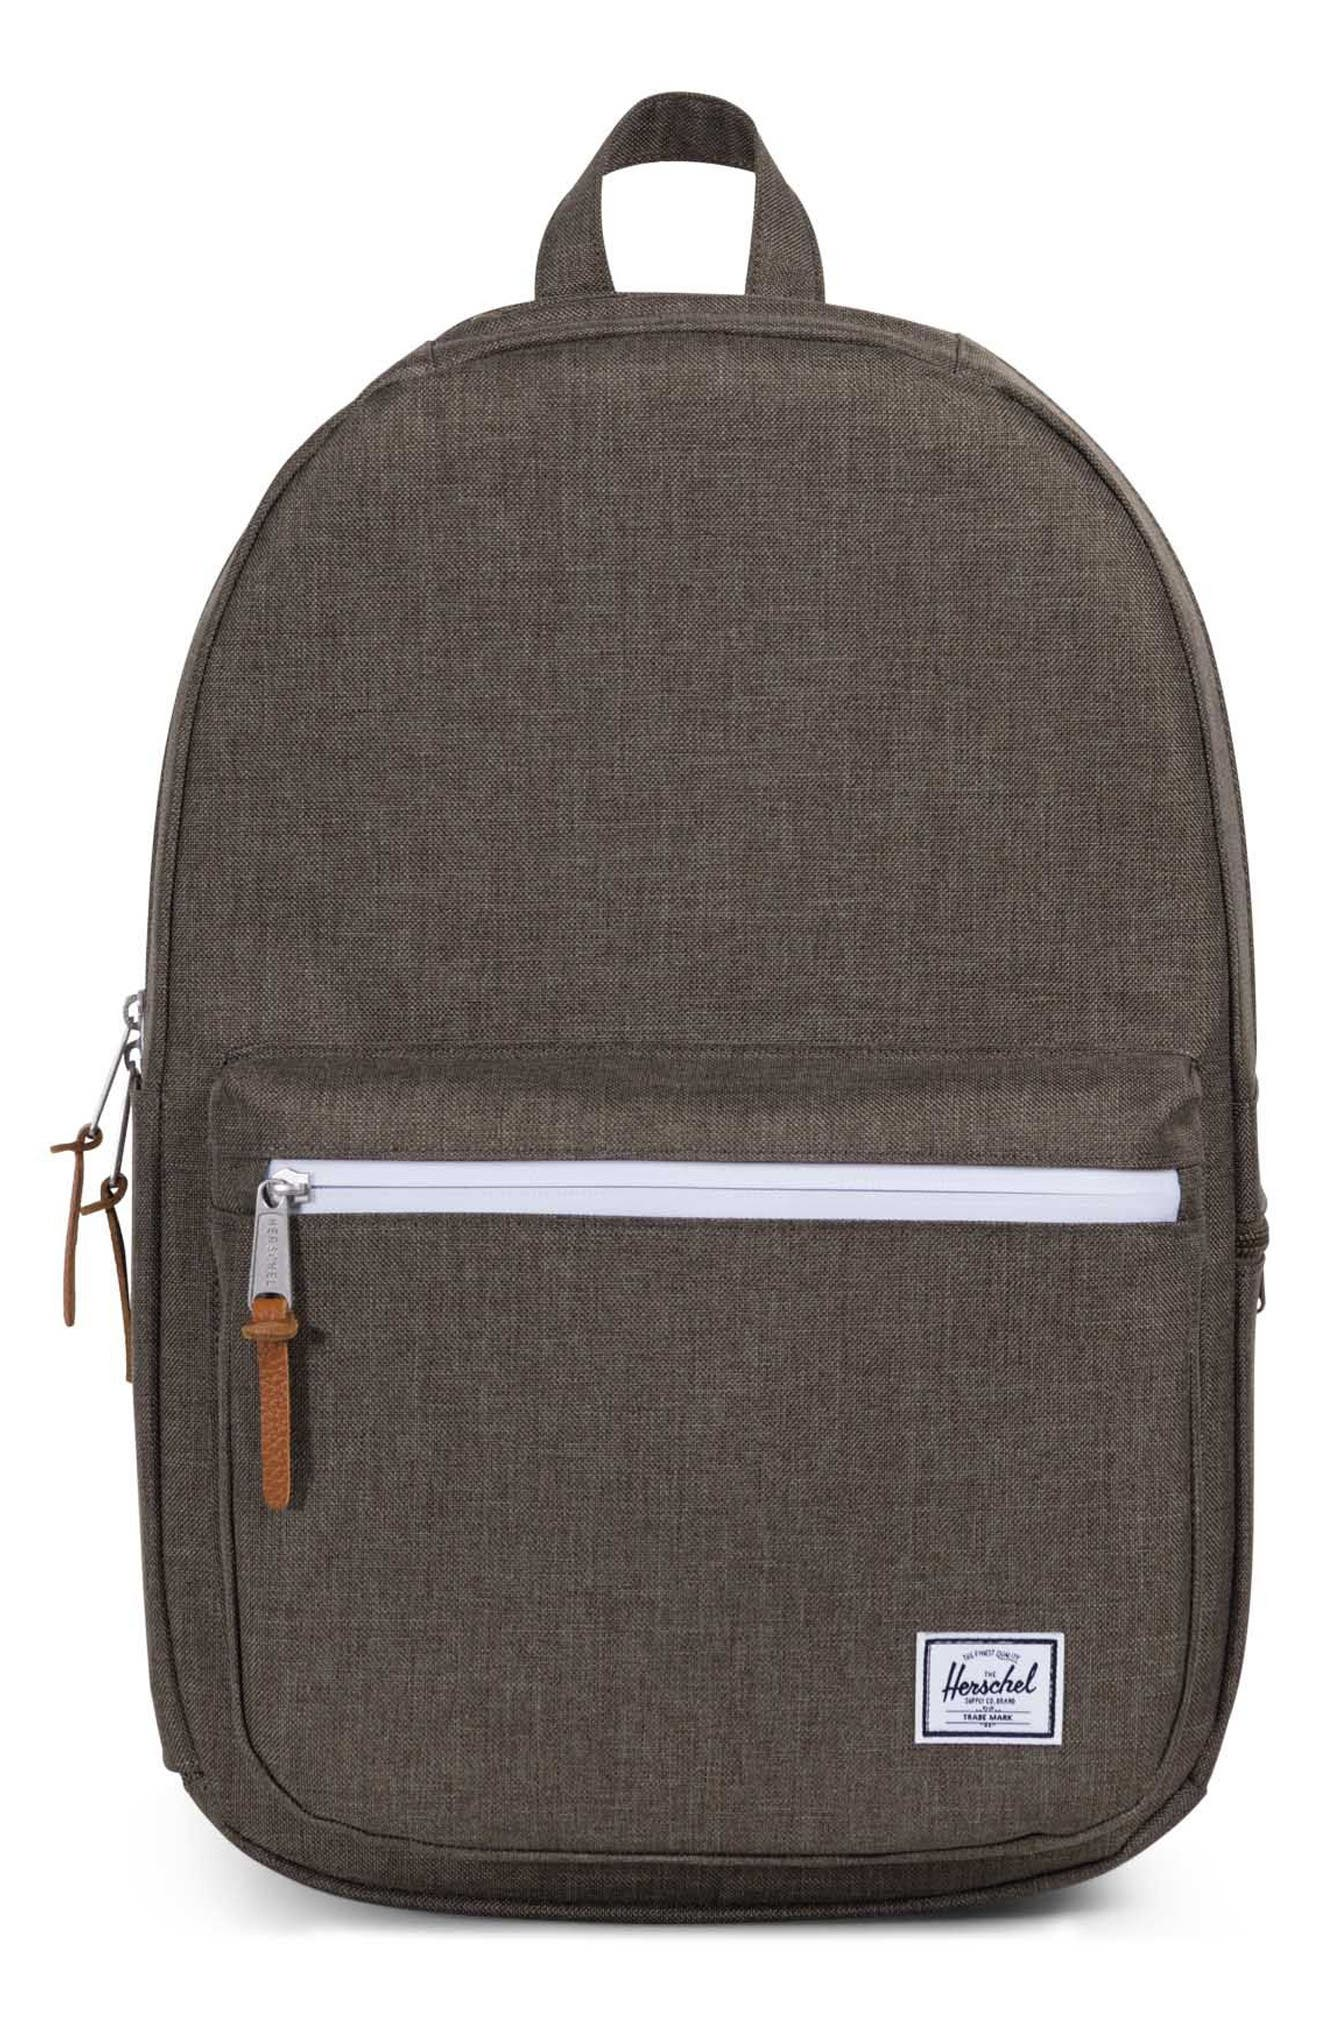 Harrison Backpack,                         Main,                         color, 218